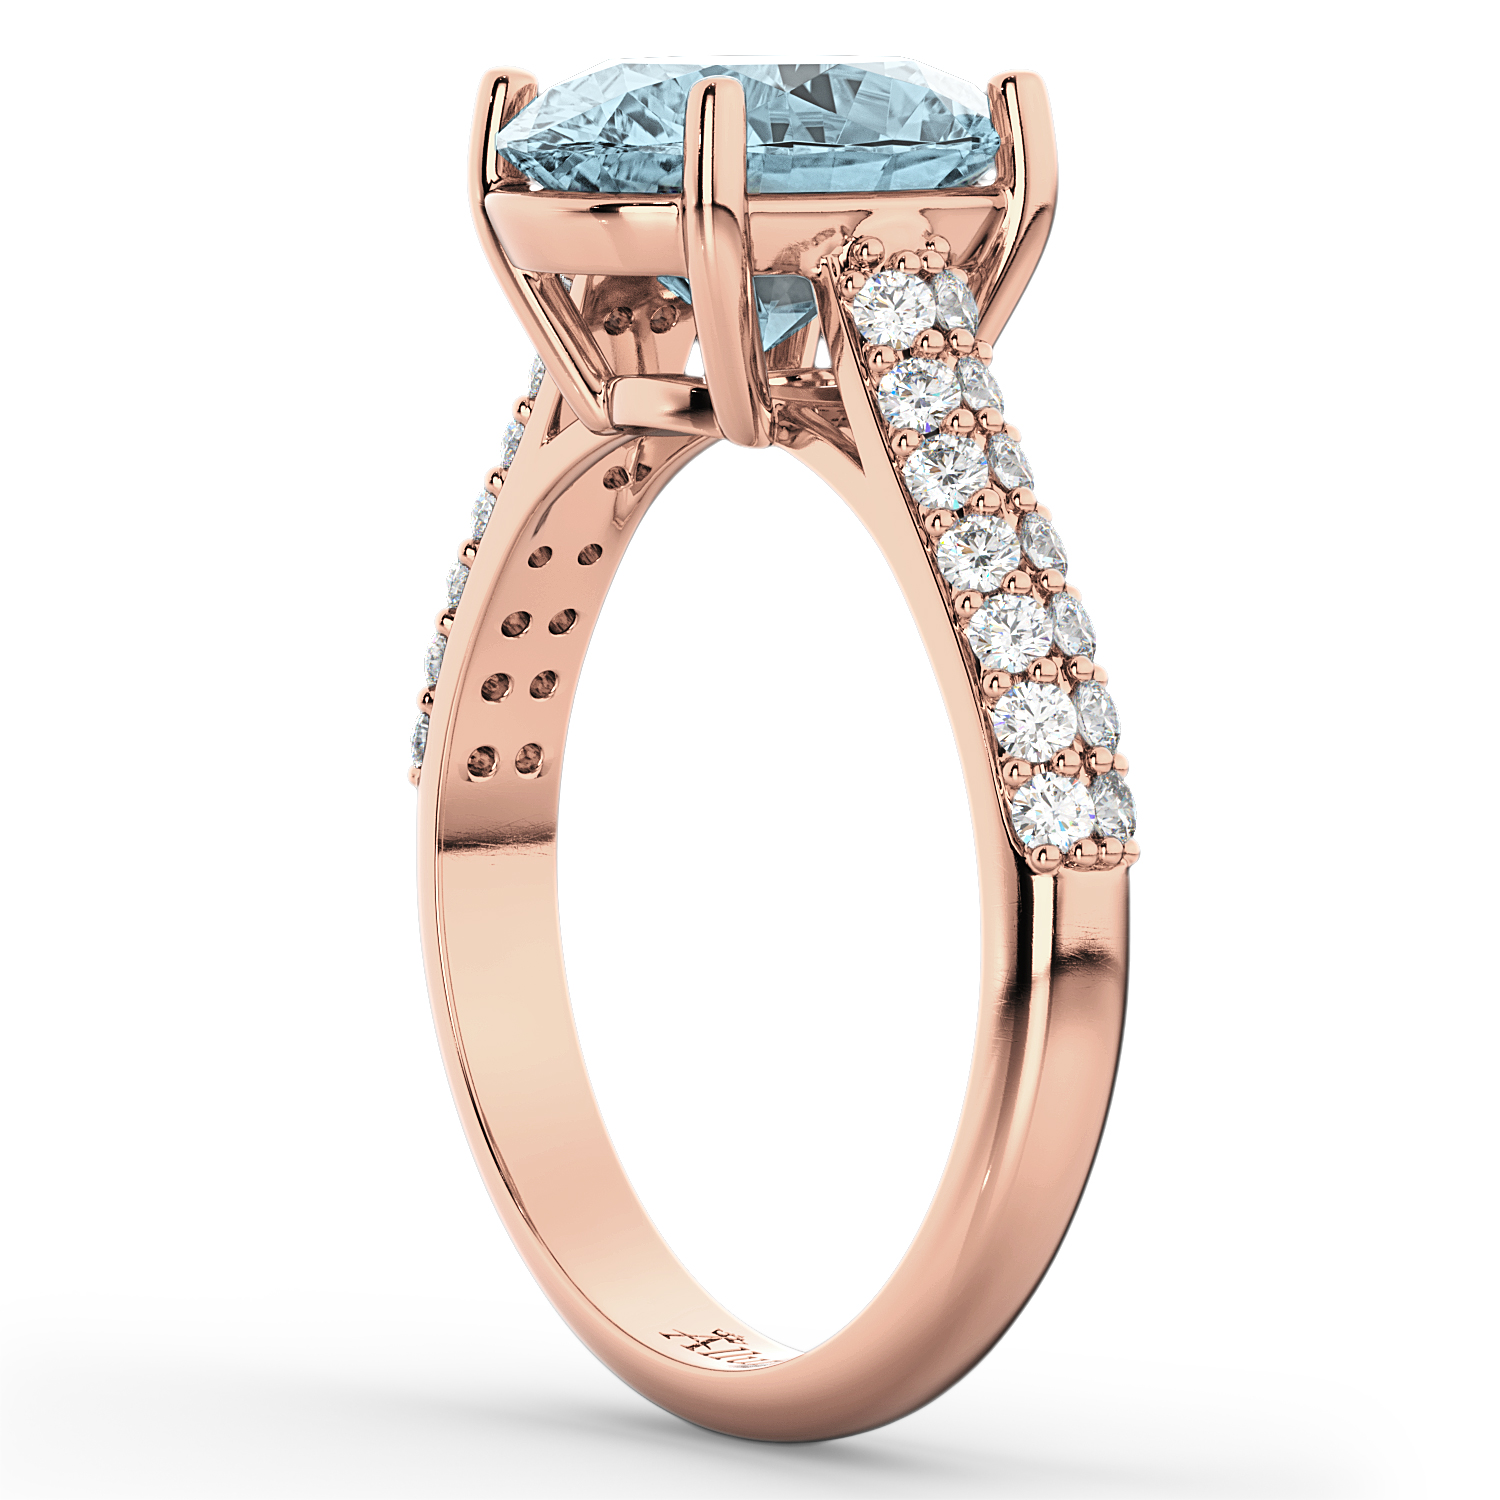 Oval Aquamarine & Diamond Engagement Ring 18k Rose Gold 4 42ct